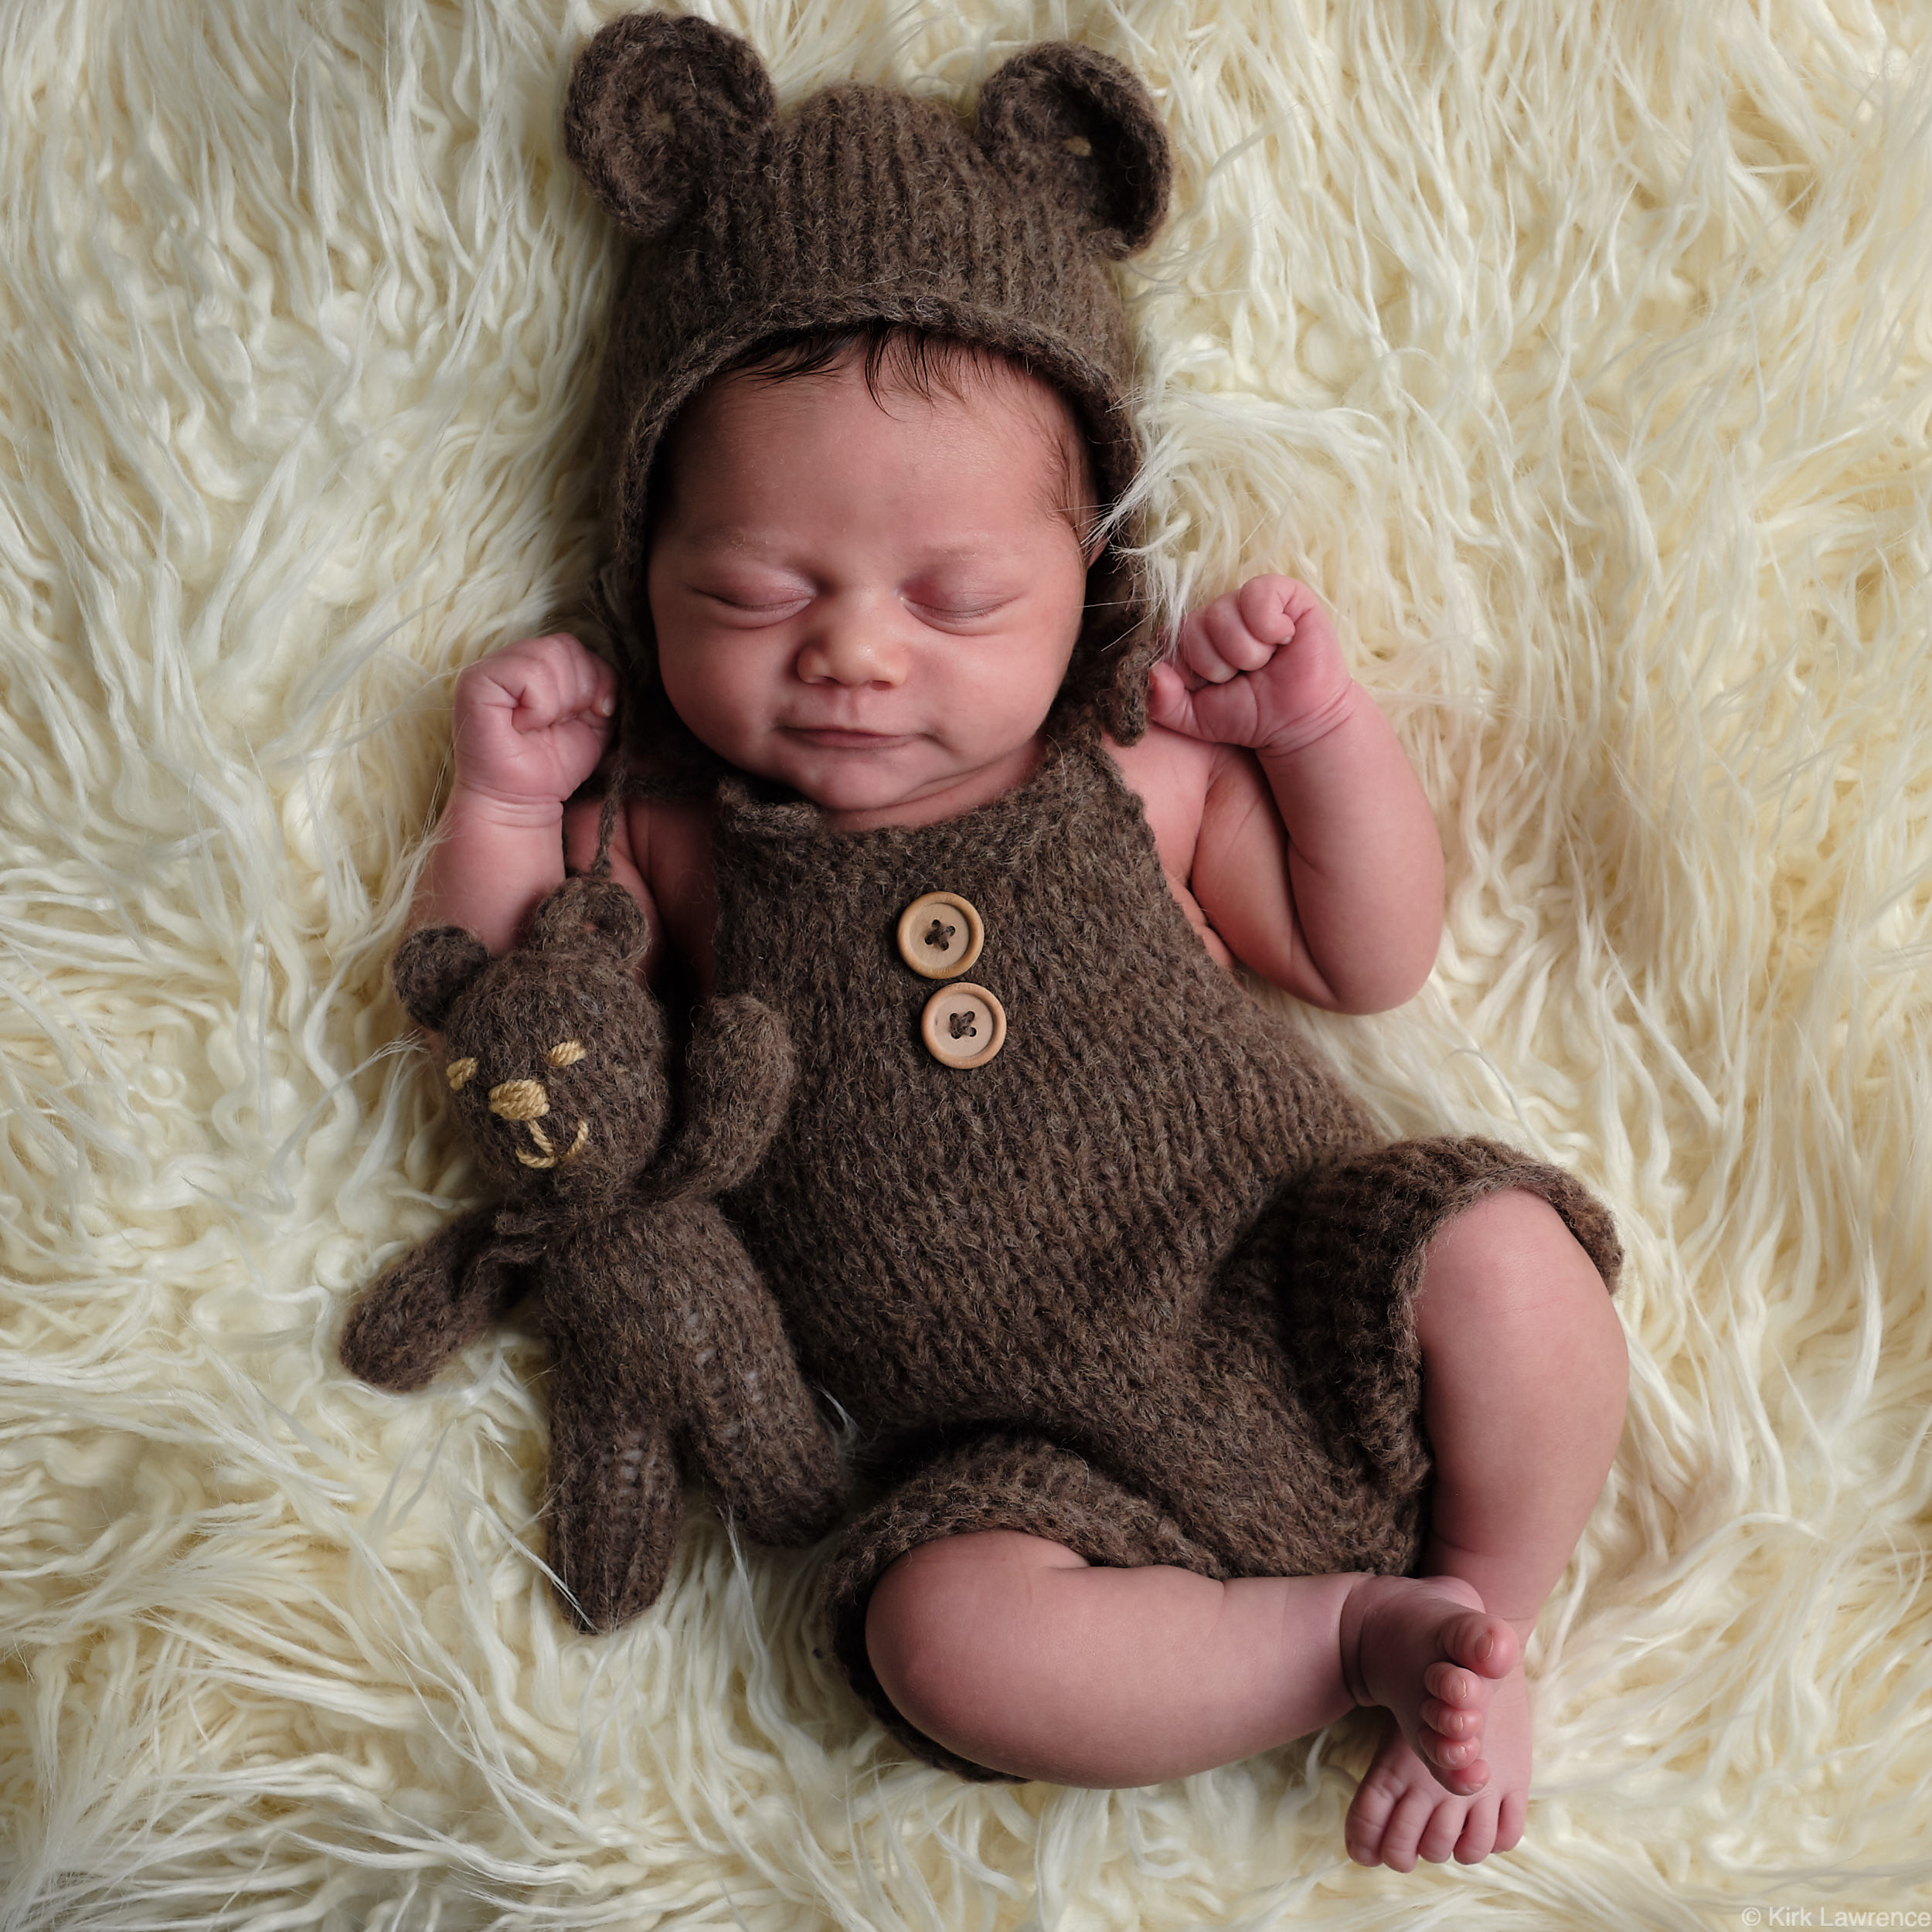 newborn_baby_brown_bear_outfit.jpg